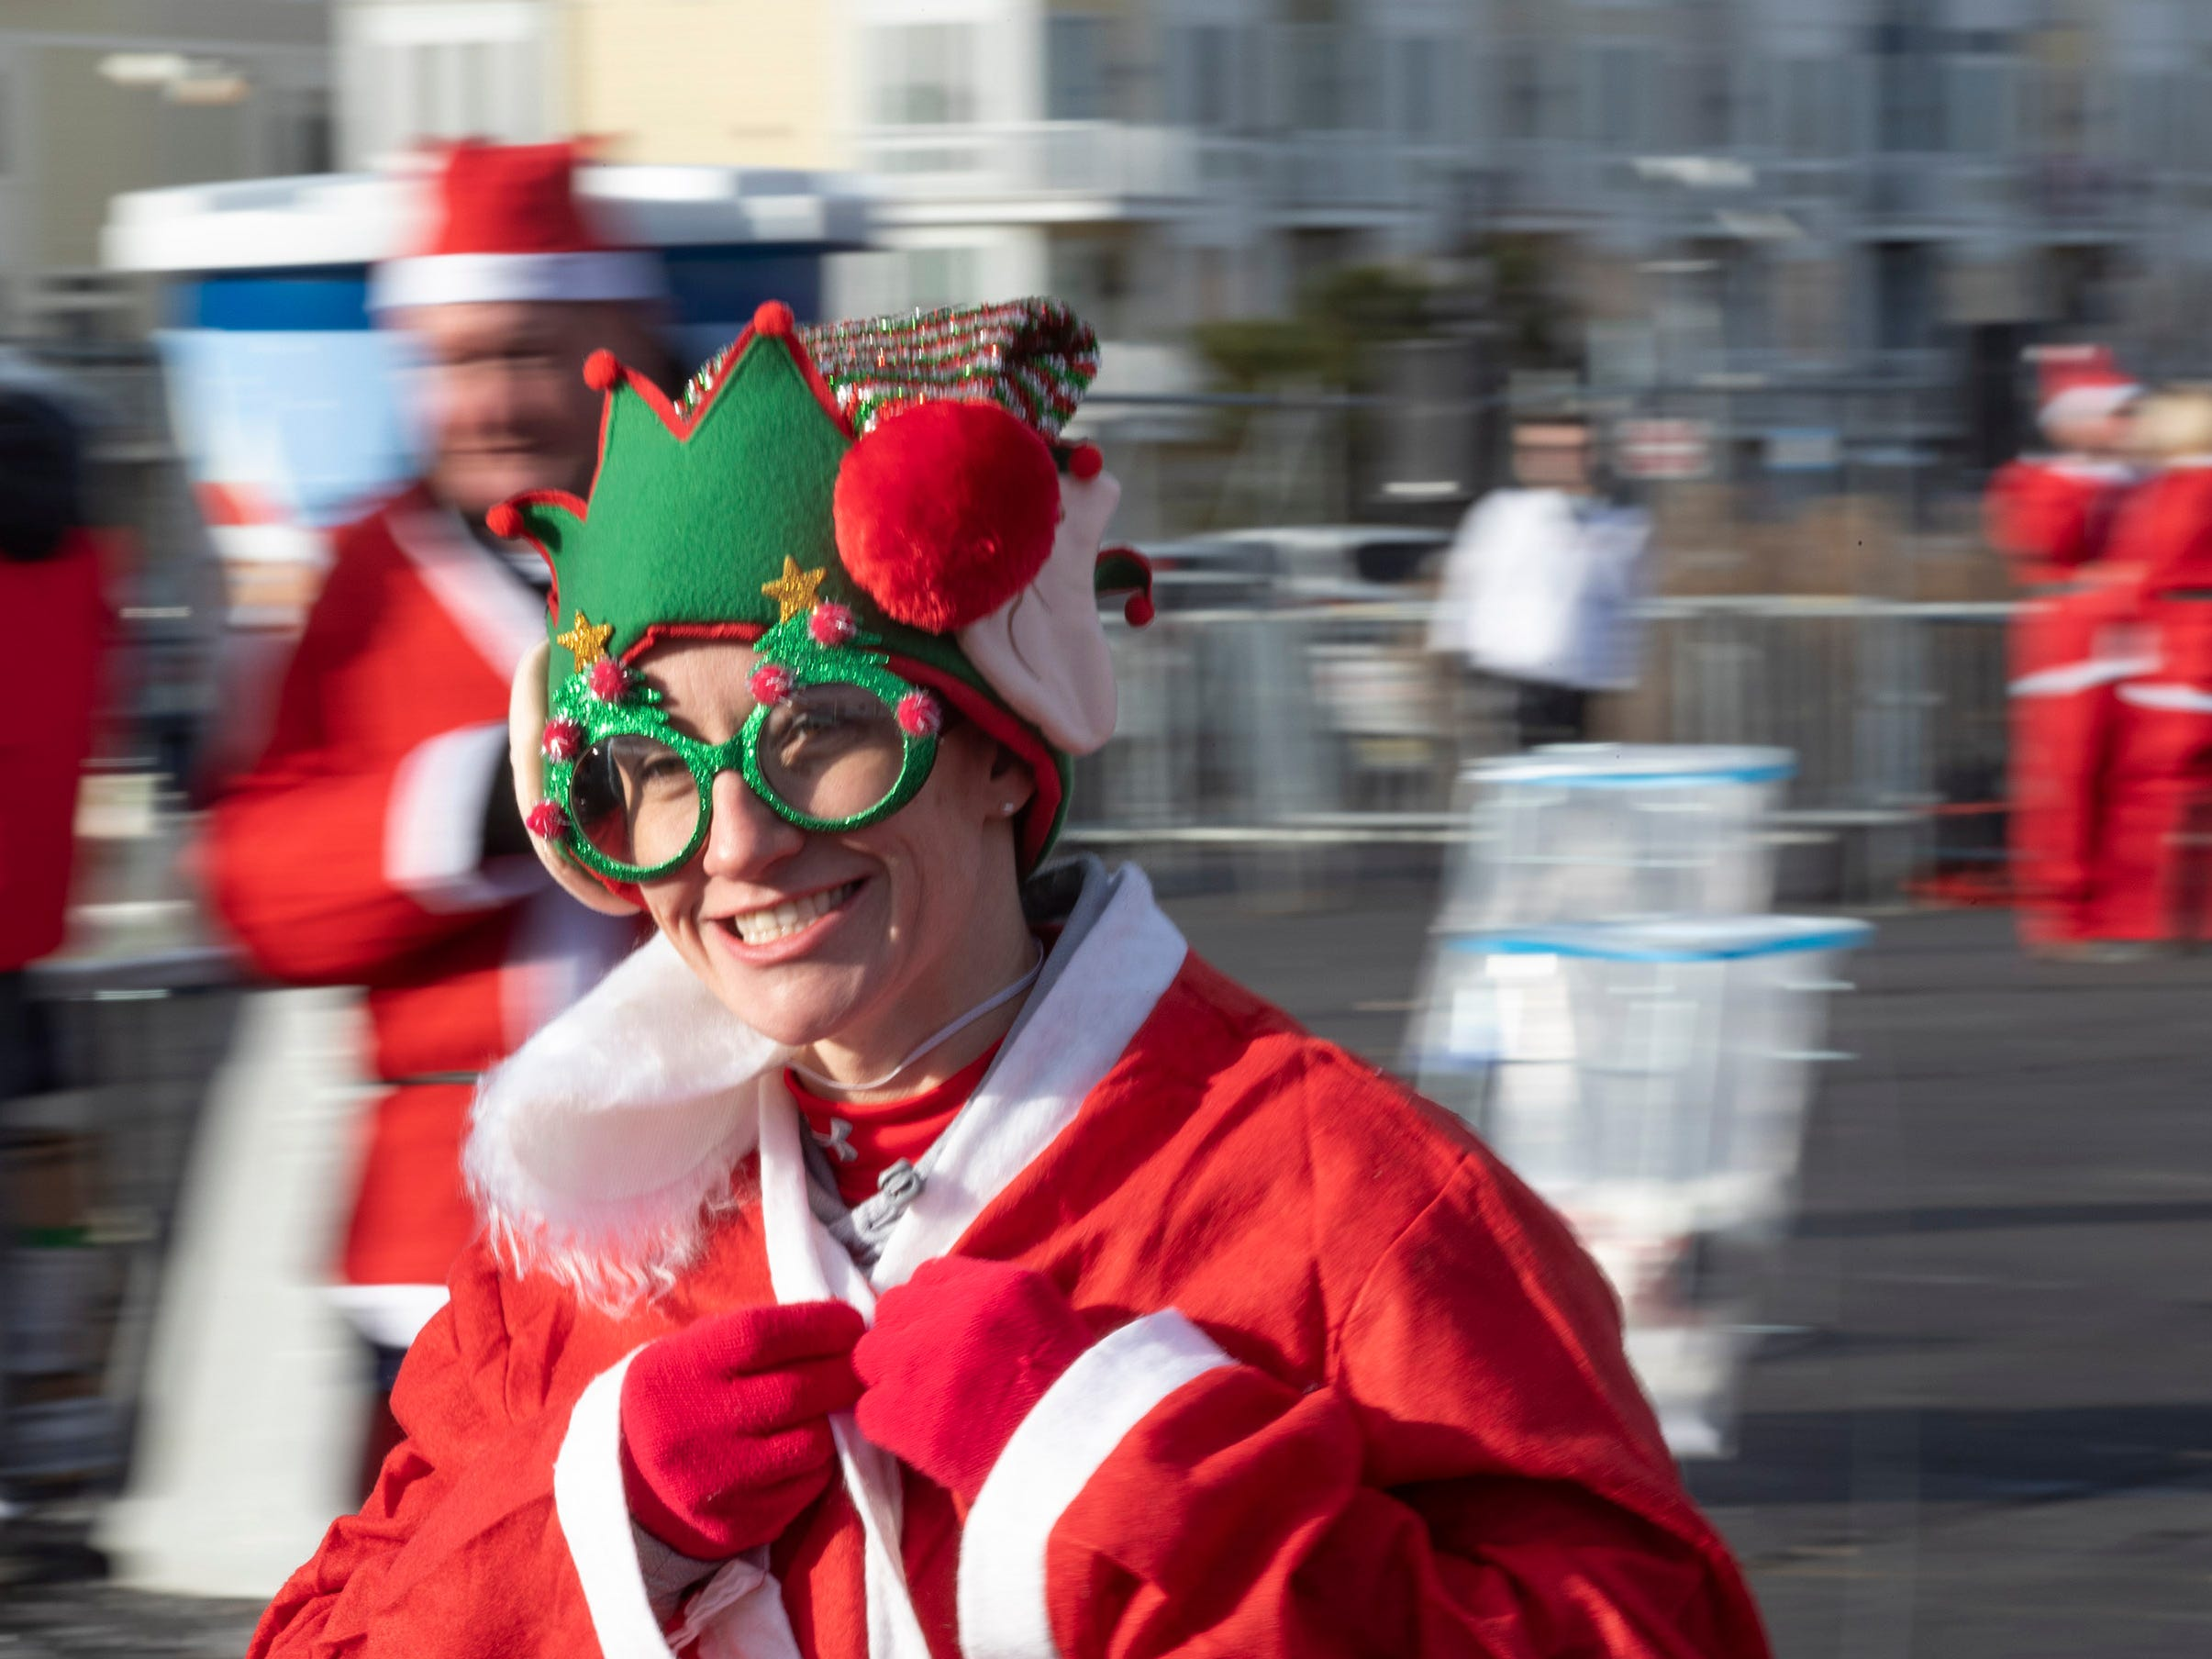 Jen Tanay of Glenside, NJ. heads to the starting line. Runners brave the cold to participate in the annual Santa Run 5K in Asbury Park on December 8, 2018.